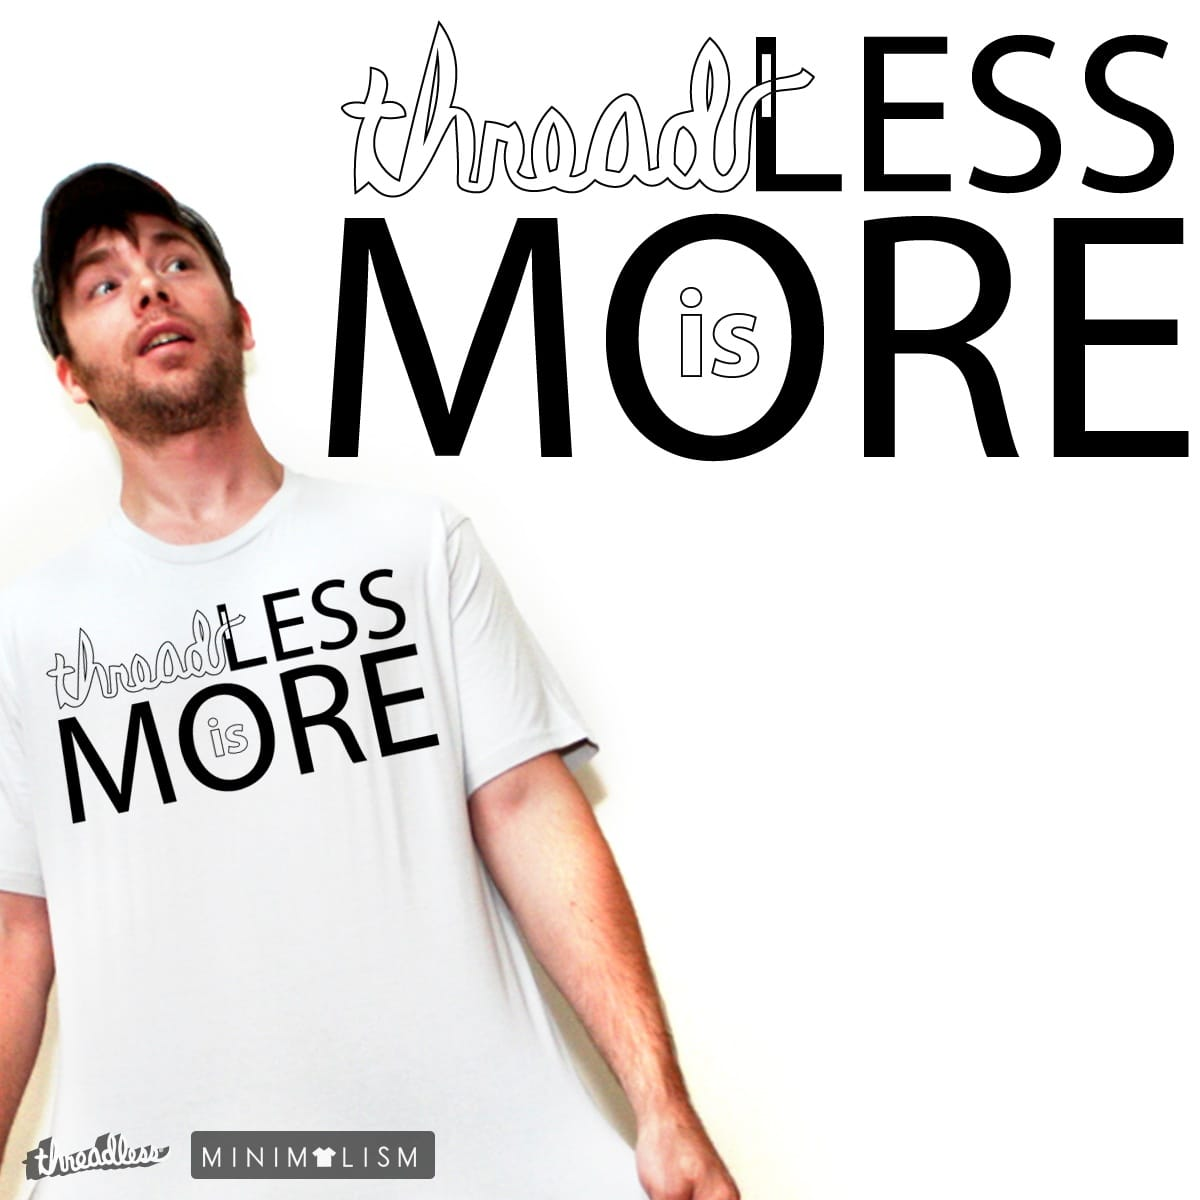 threadLESS is MORE by mdelvalle731 on Threadless